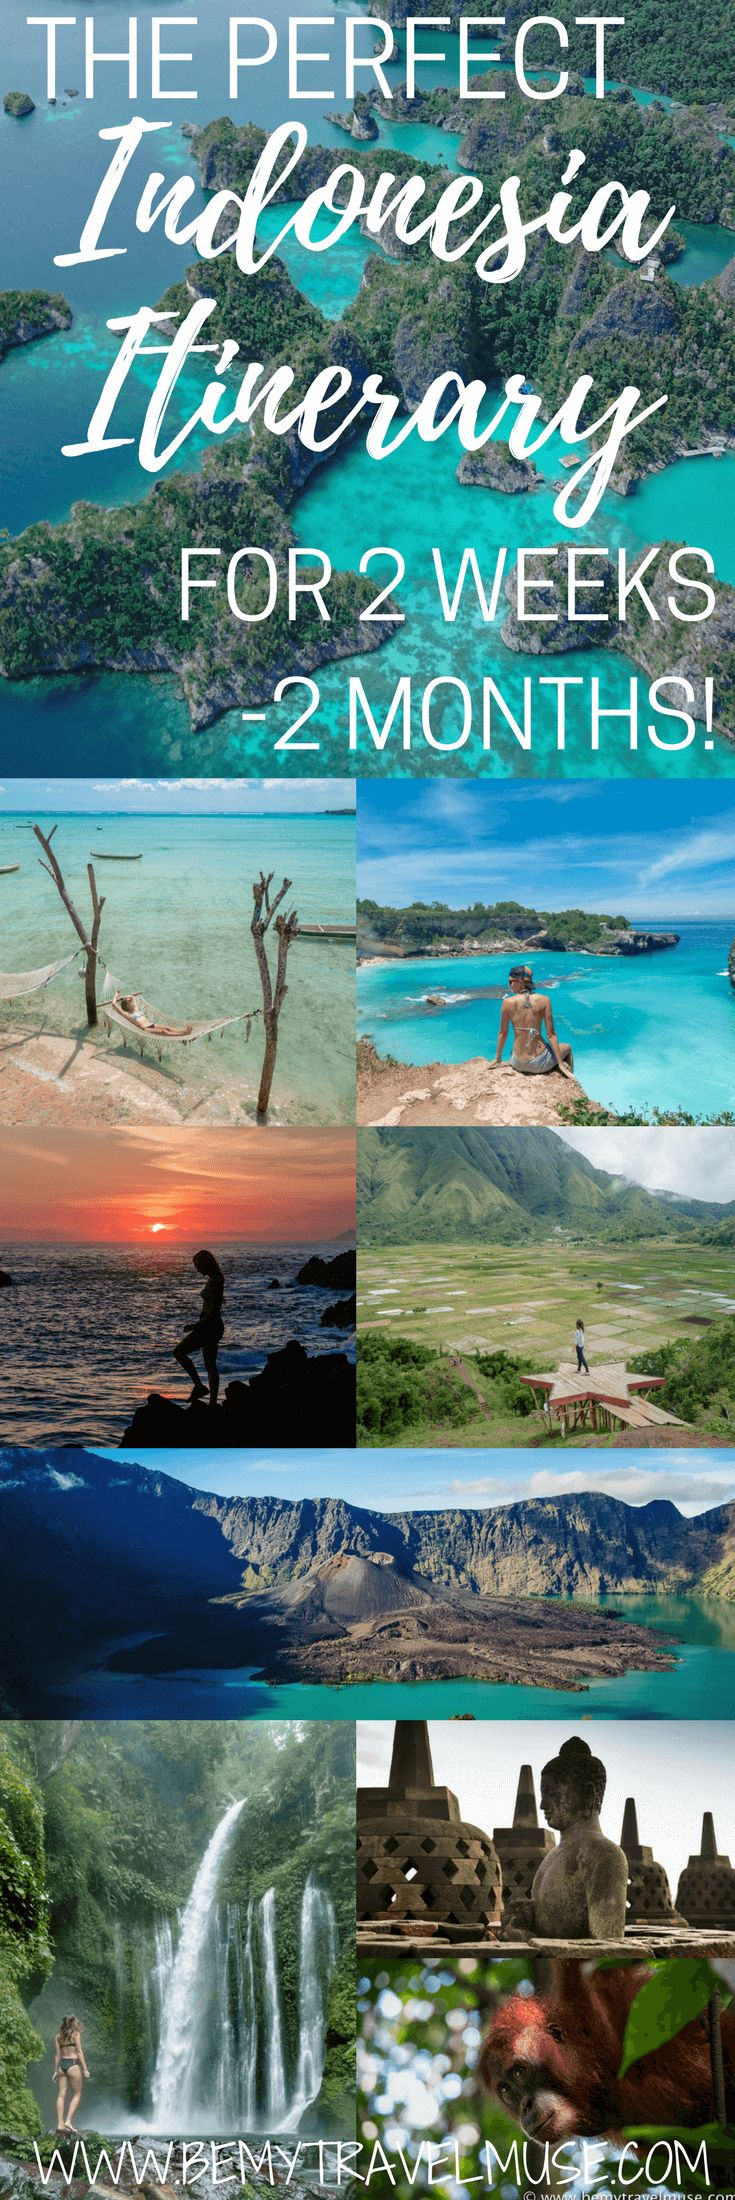 The Perfect Indonesia Itinerary for 2 Weeks to 2 Months